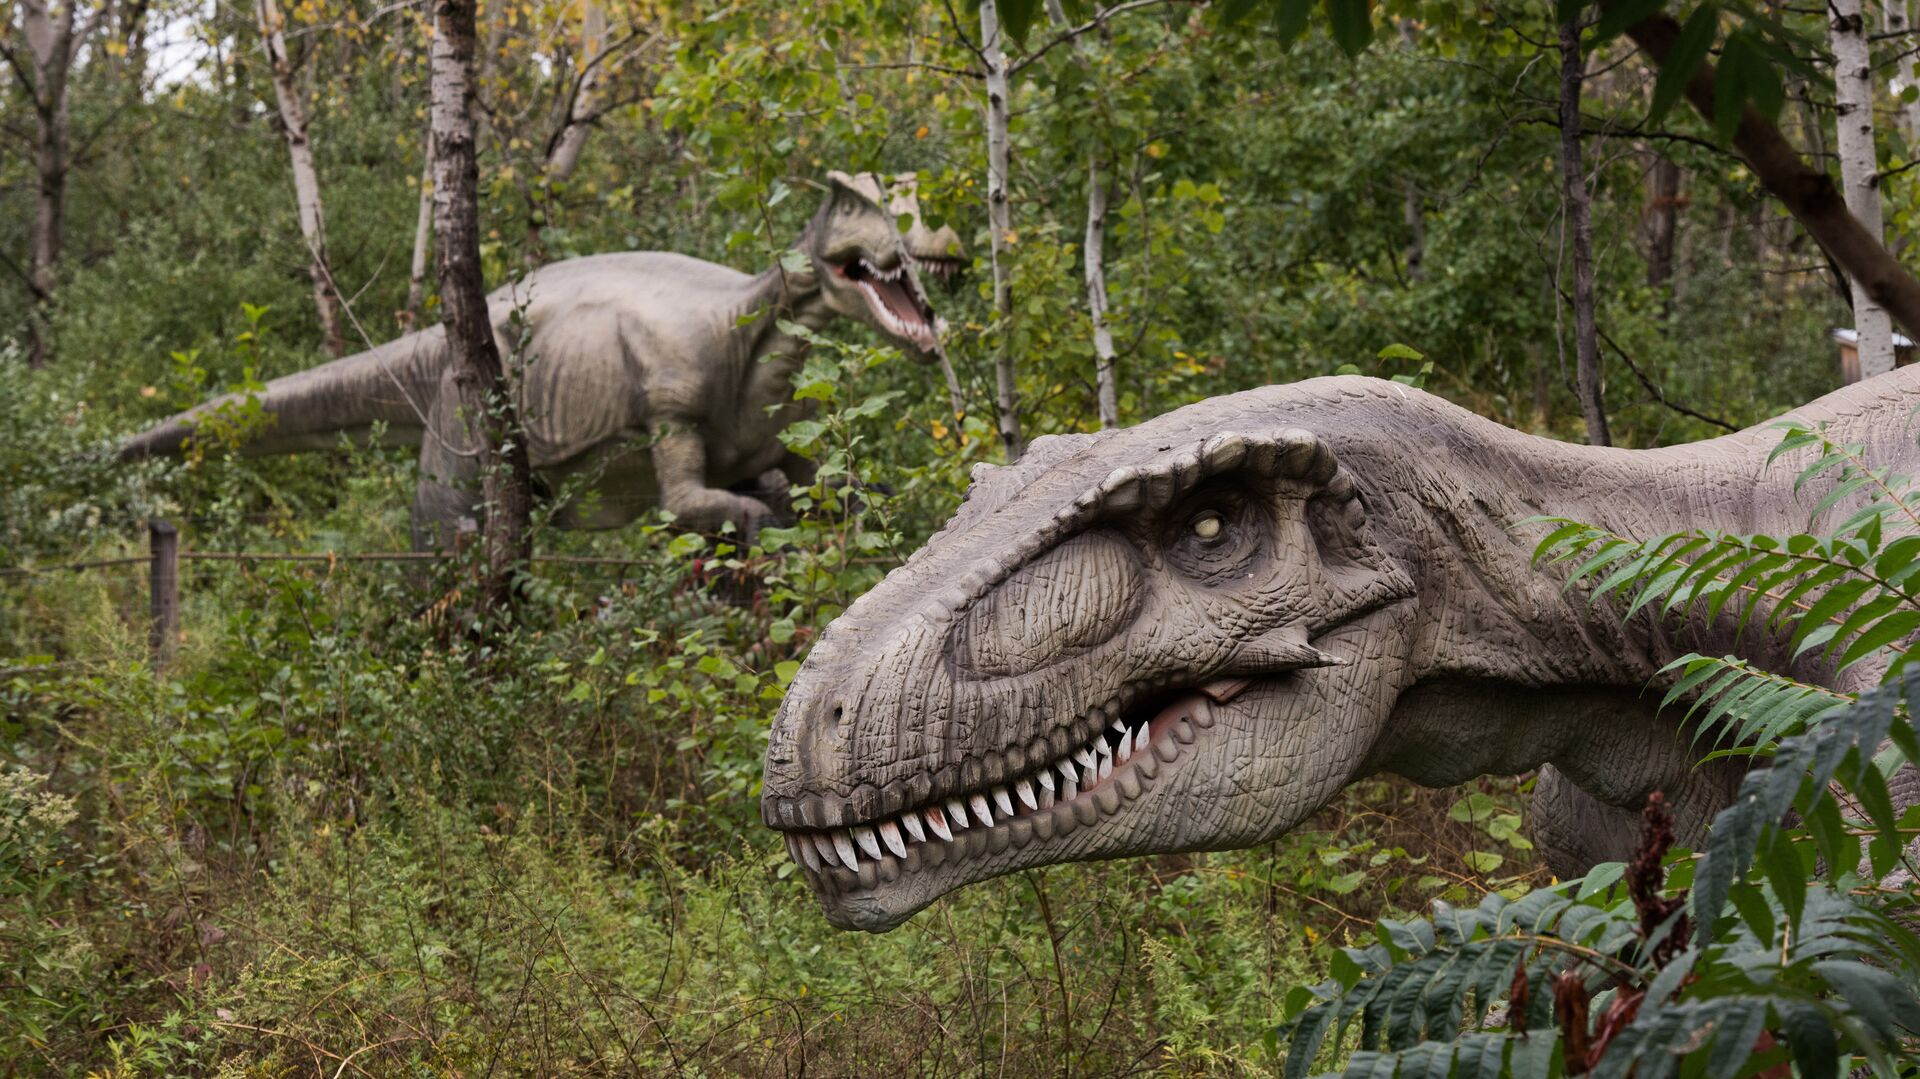 Life-sized animatronic dinosaurs are seen at Field Station: Dinosaurs, a 20-acre outdoor Jurassic learning expedition and family tourist attraction in Secaucus, N.J. on Thursday, Sept. 25, 2014 - Sputnik Mundo, 1920, 02.07.2021